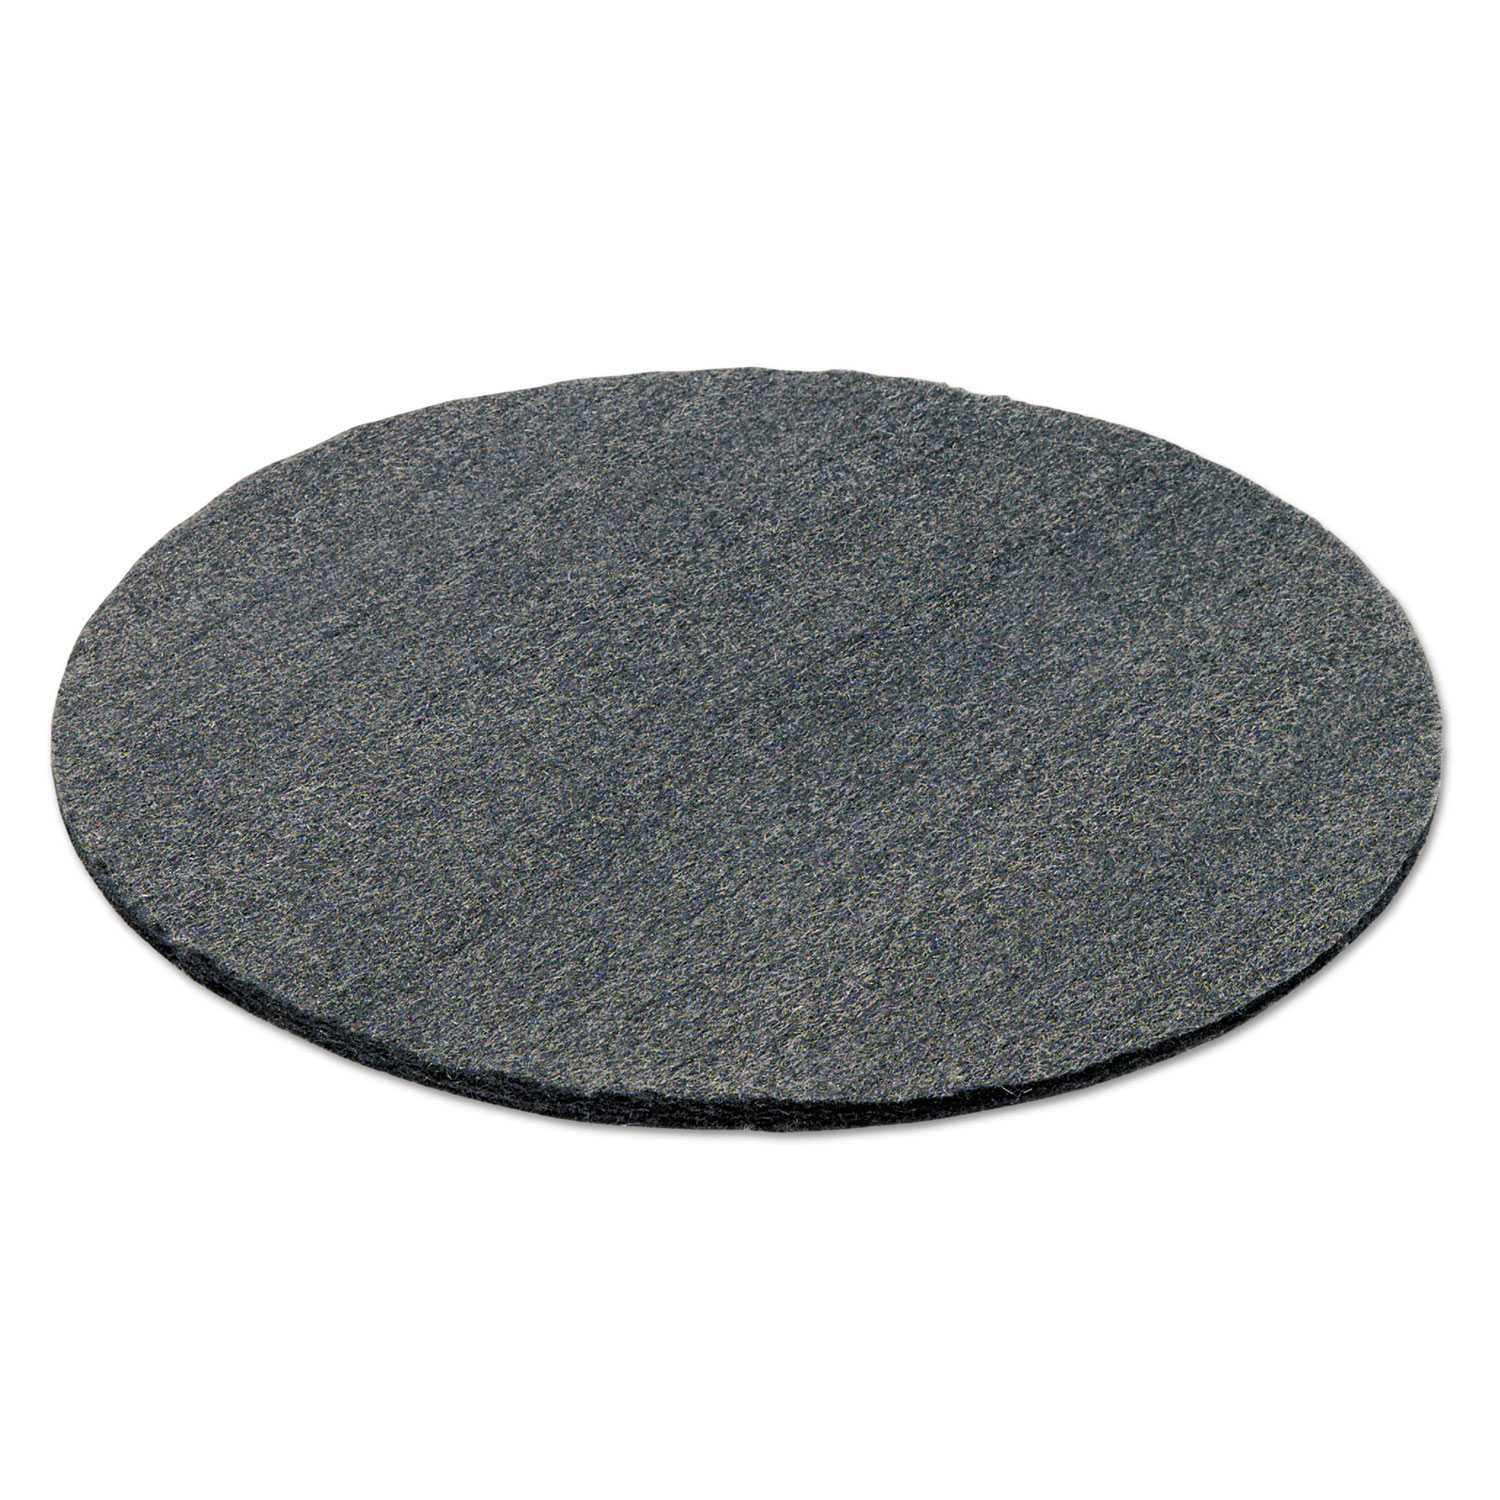 Radial Steel Wool Pads By Gmt Gma120190 Ontimesupplies Com